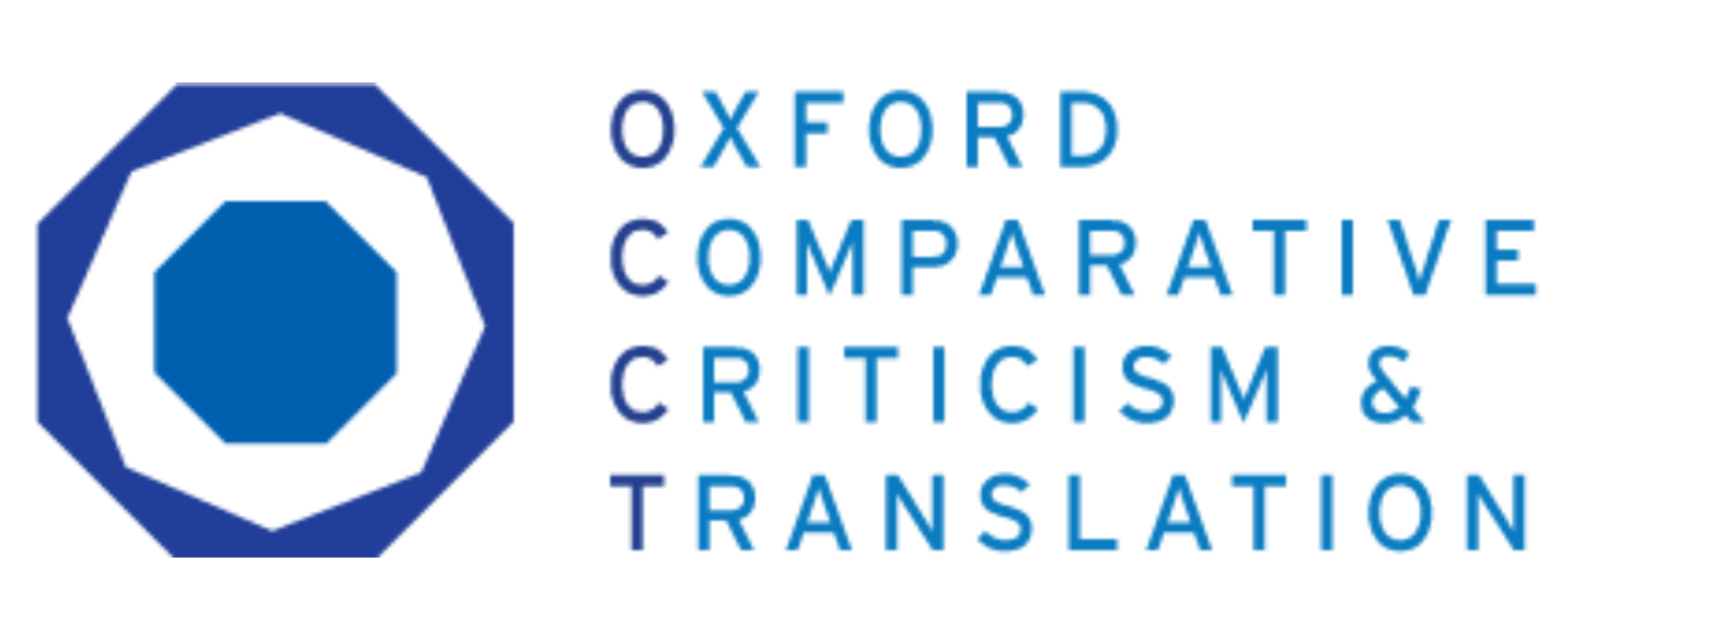 Logo for the Oxford Comparative Criticism and Translation Group, featuring a blue O